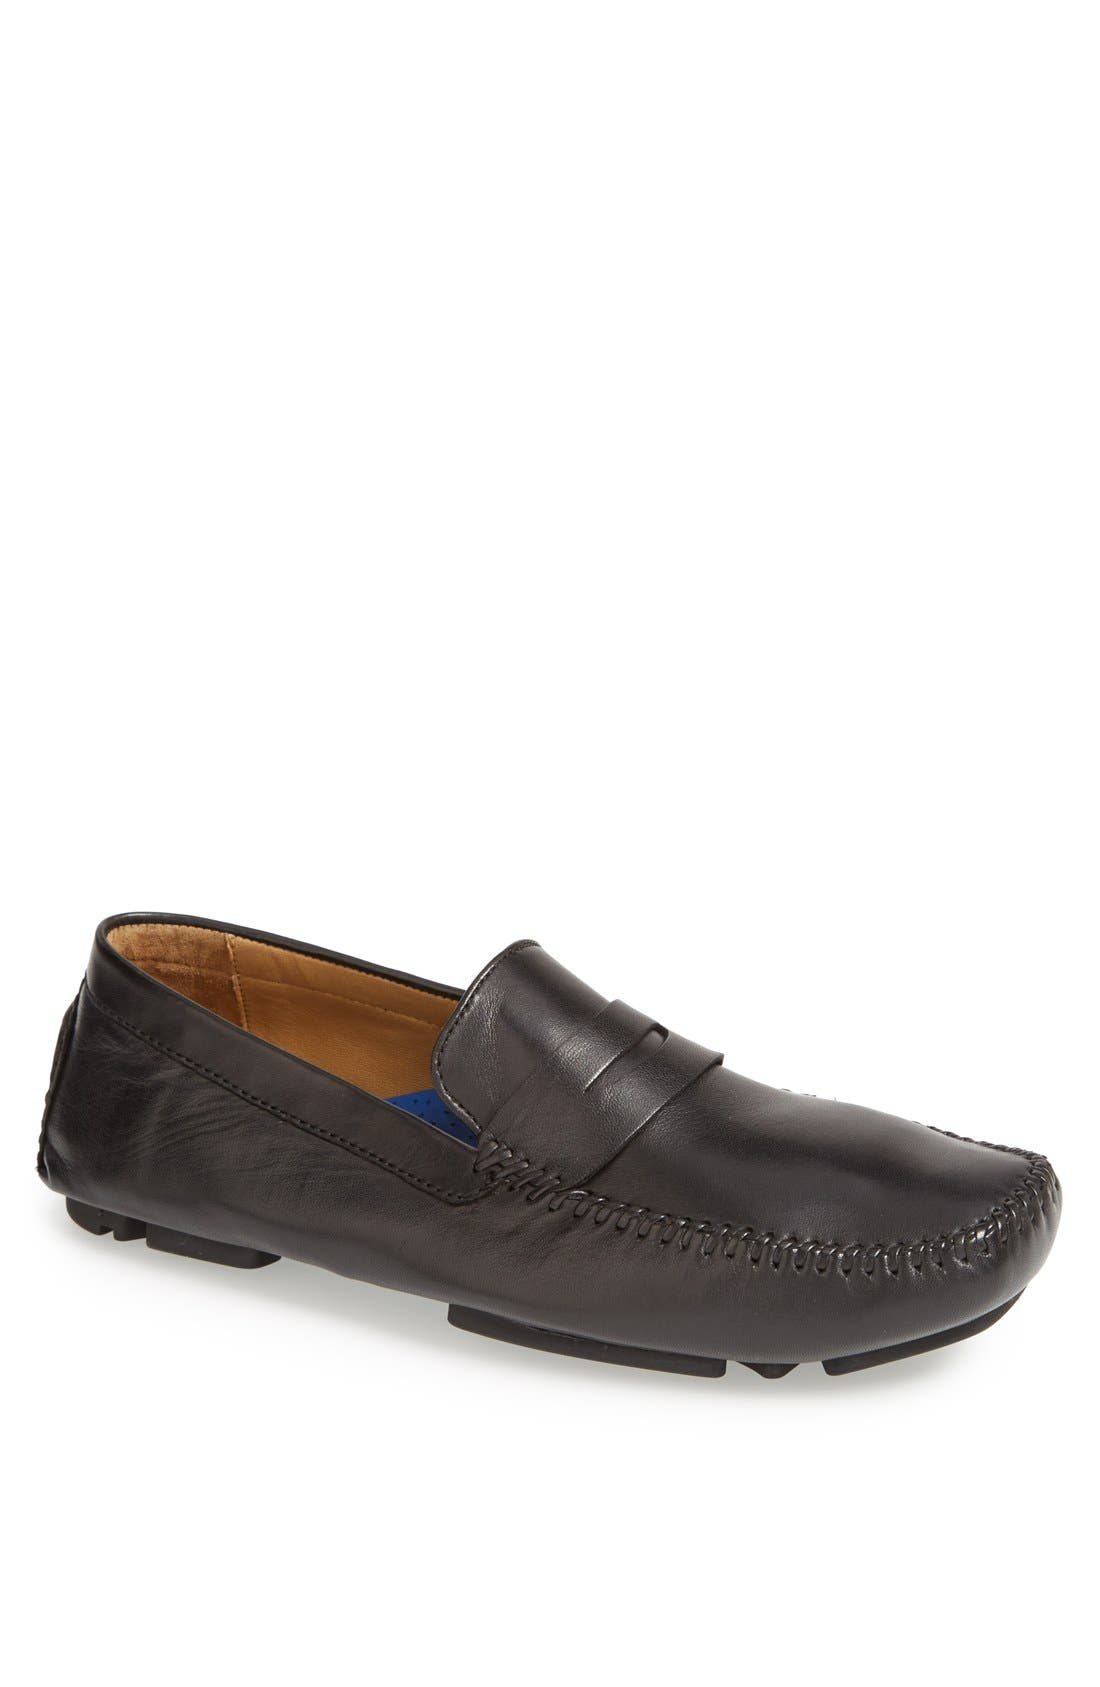 Robert Zur 'Sven' Penny Loafer